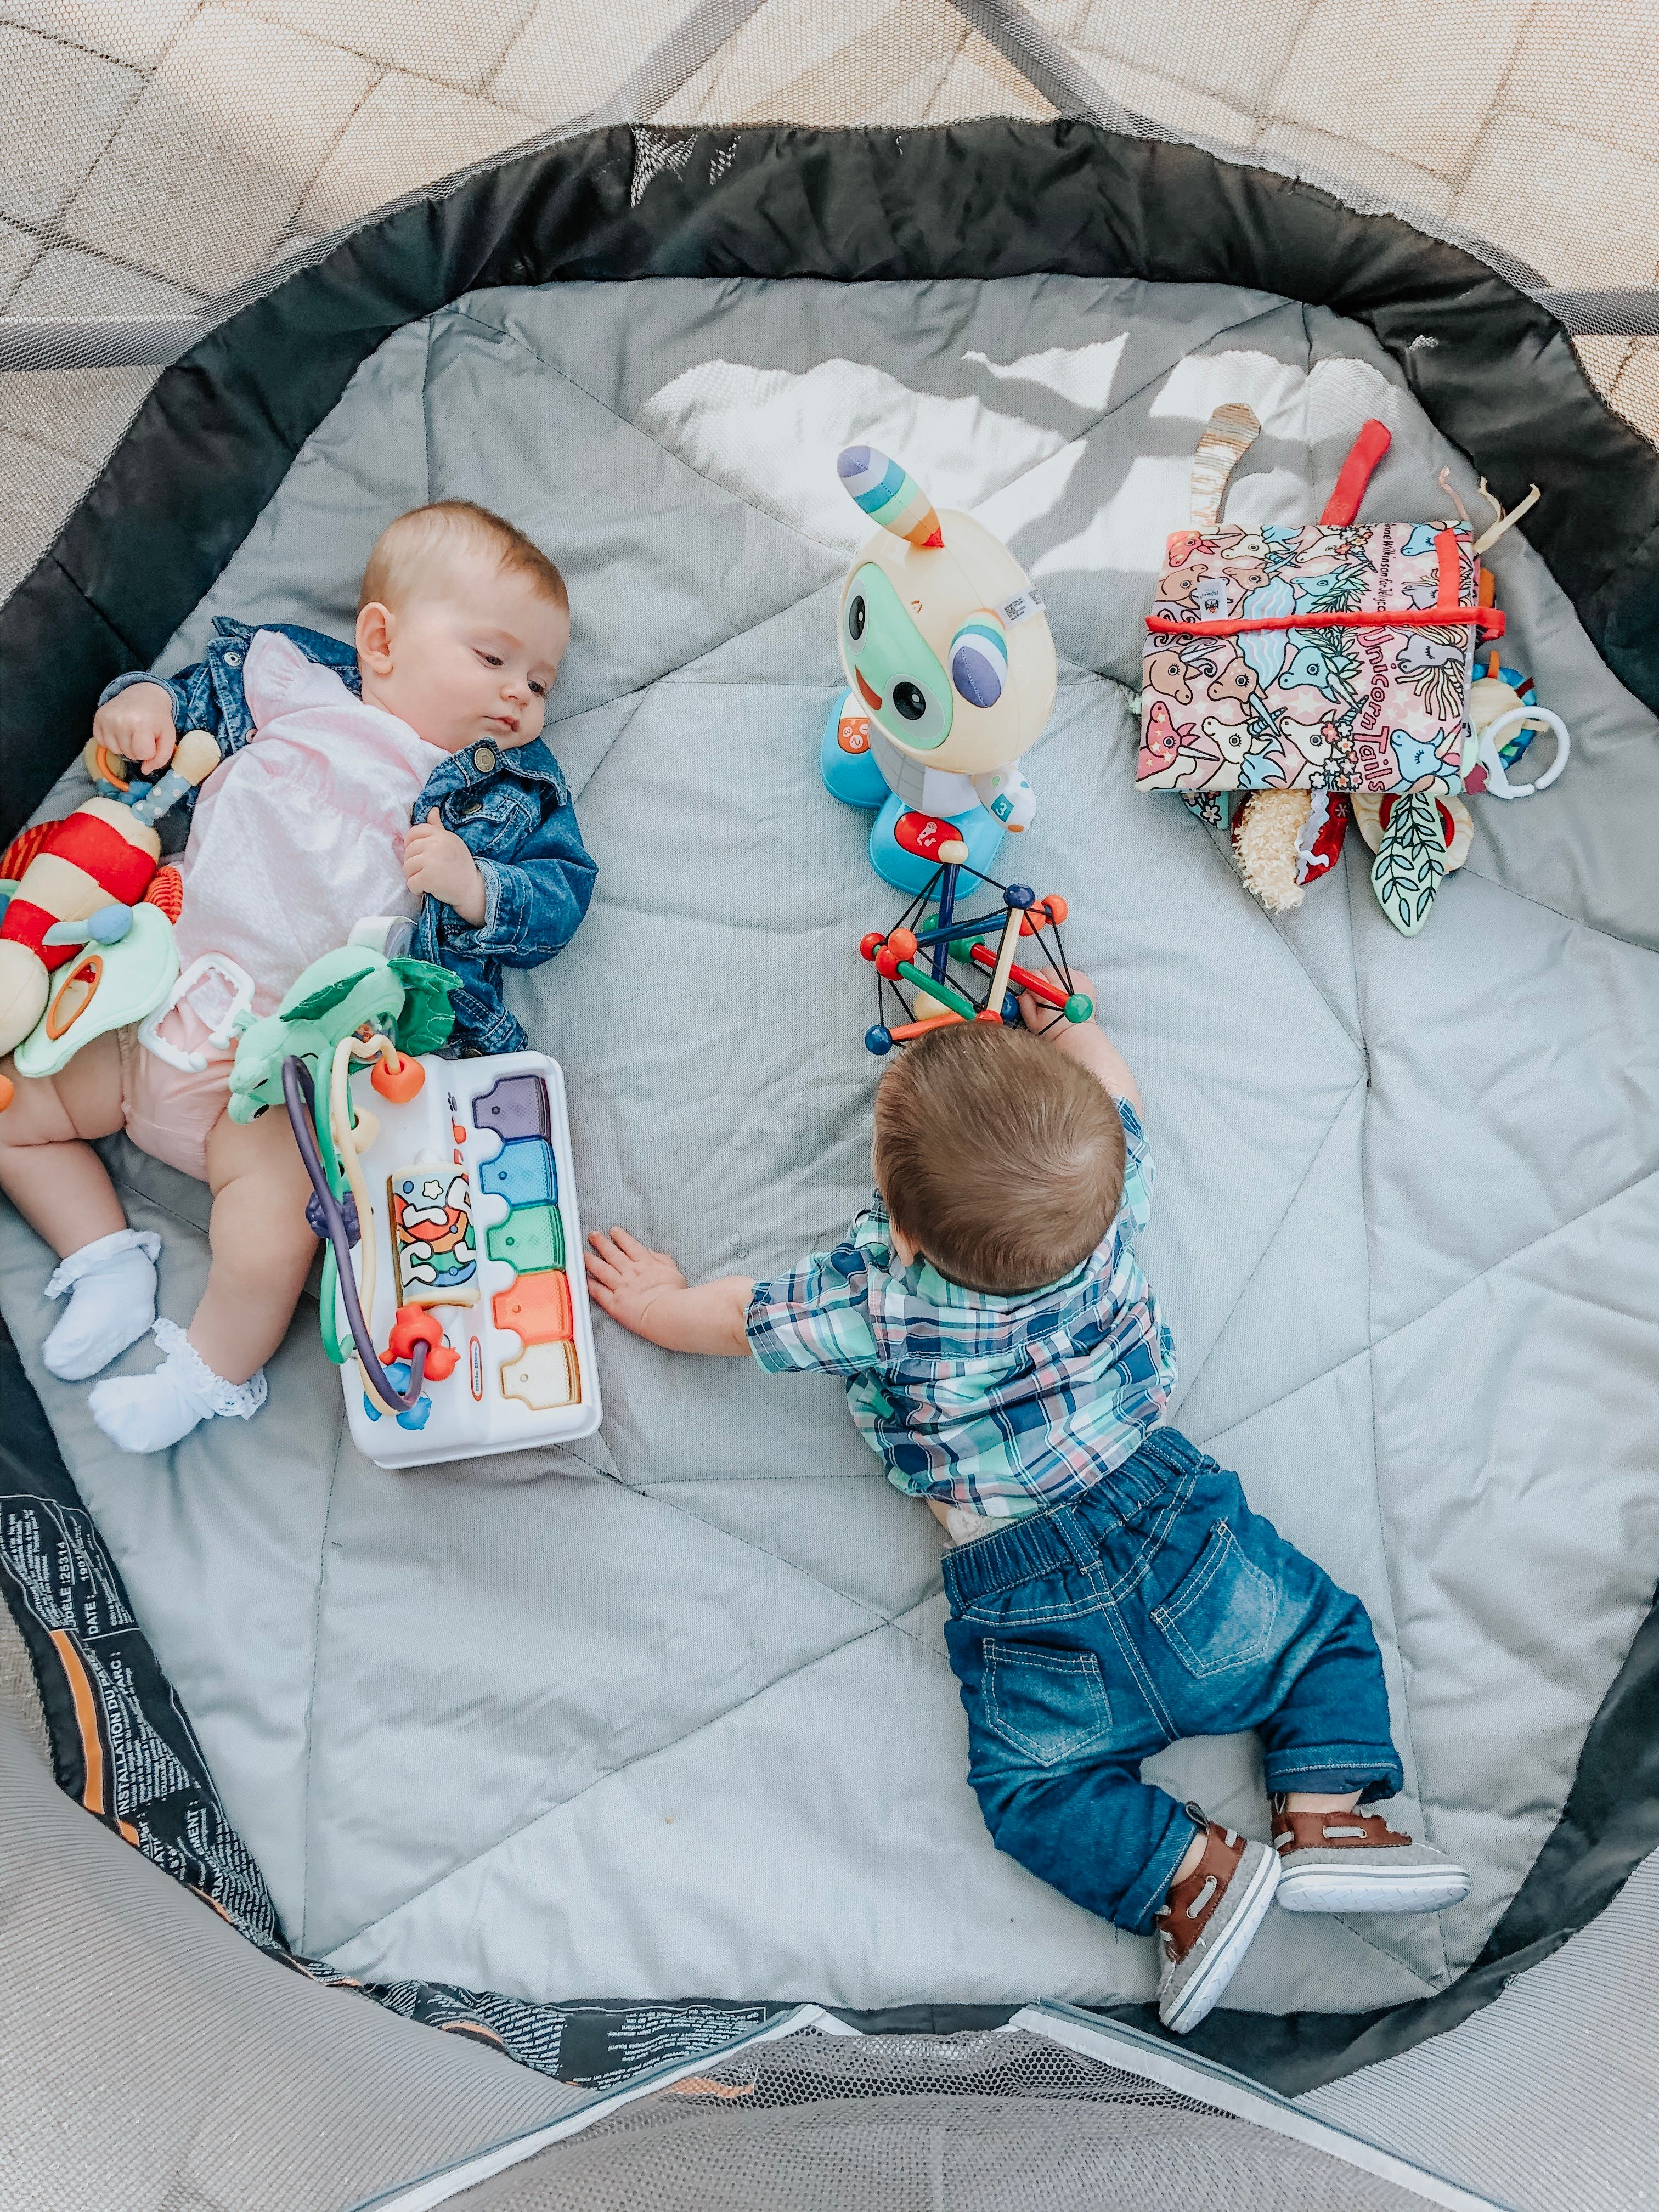 The essentails for having a baby outside in the hot summer sun. Don't leave home without some of these items to protect your baby & encourage outdoor play.